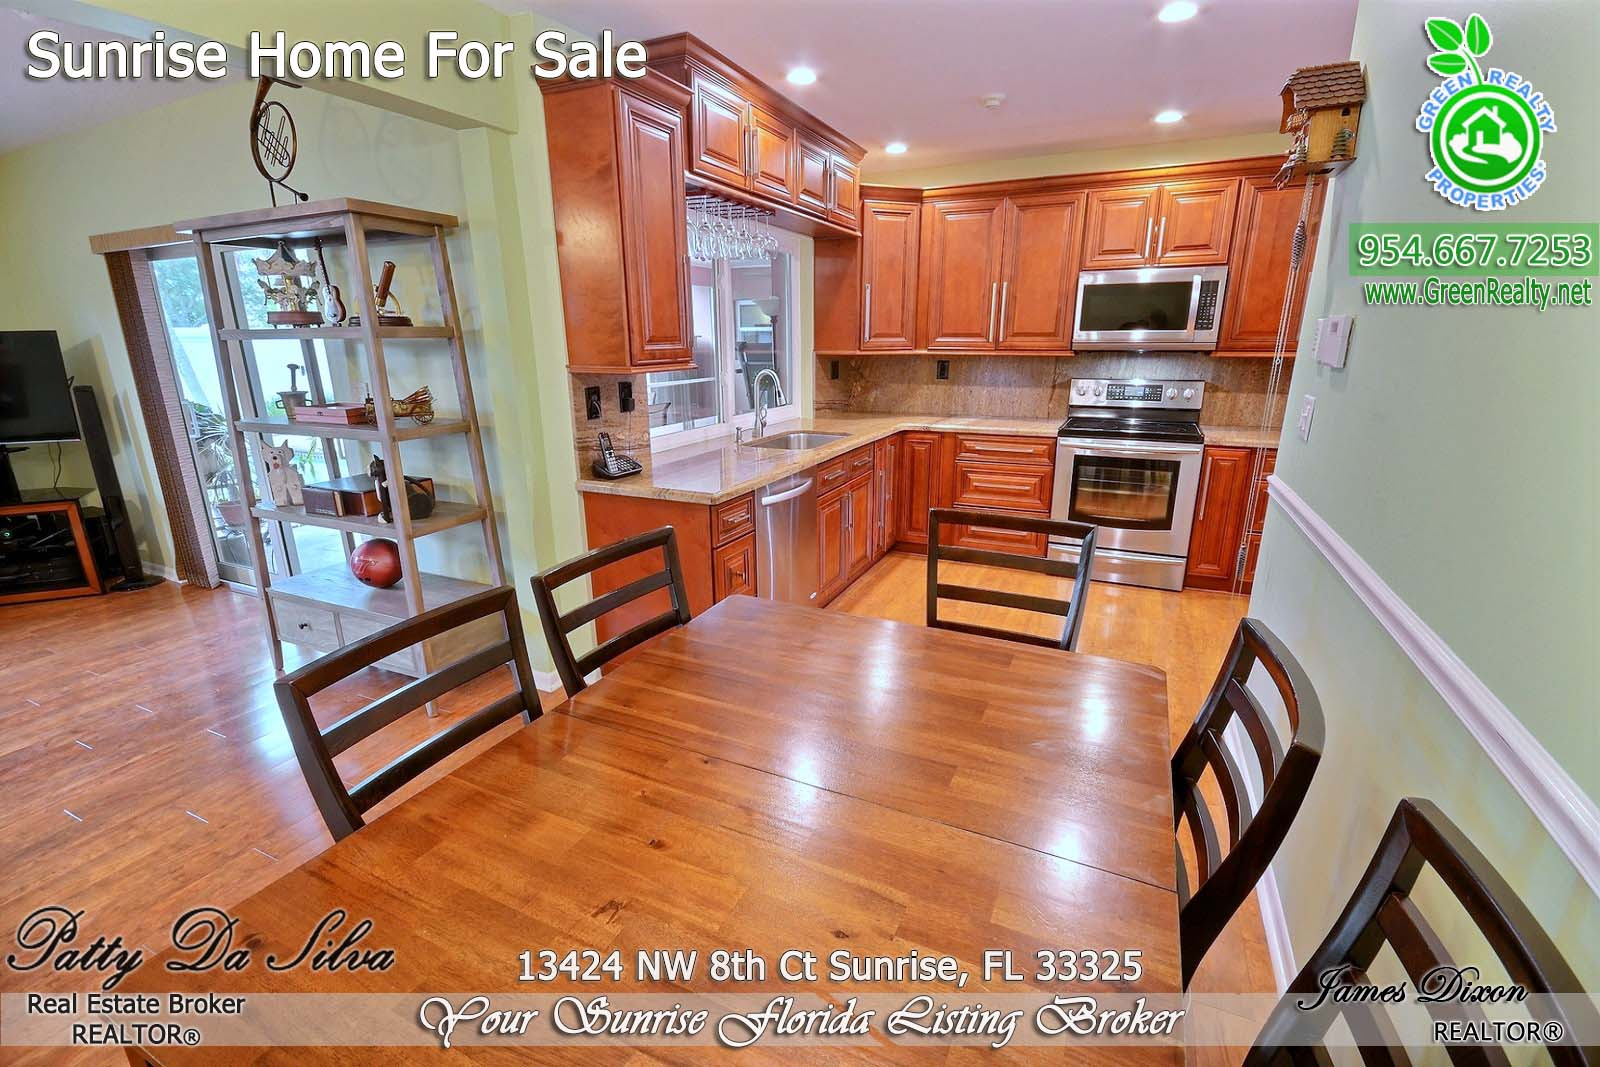 8 Homes For Sale in Sunrise Florida (5)